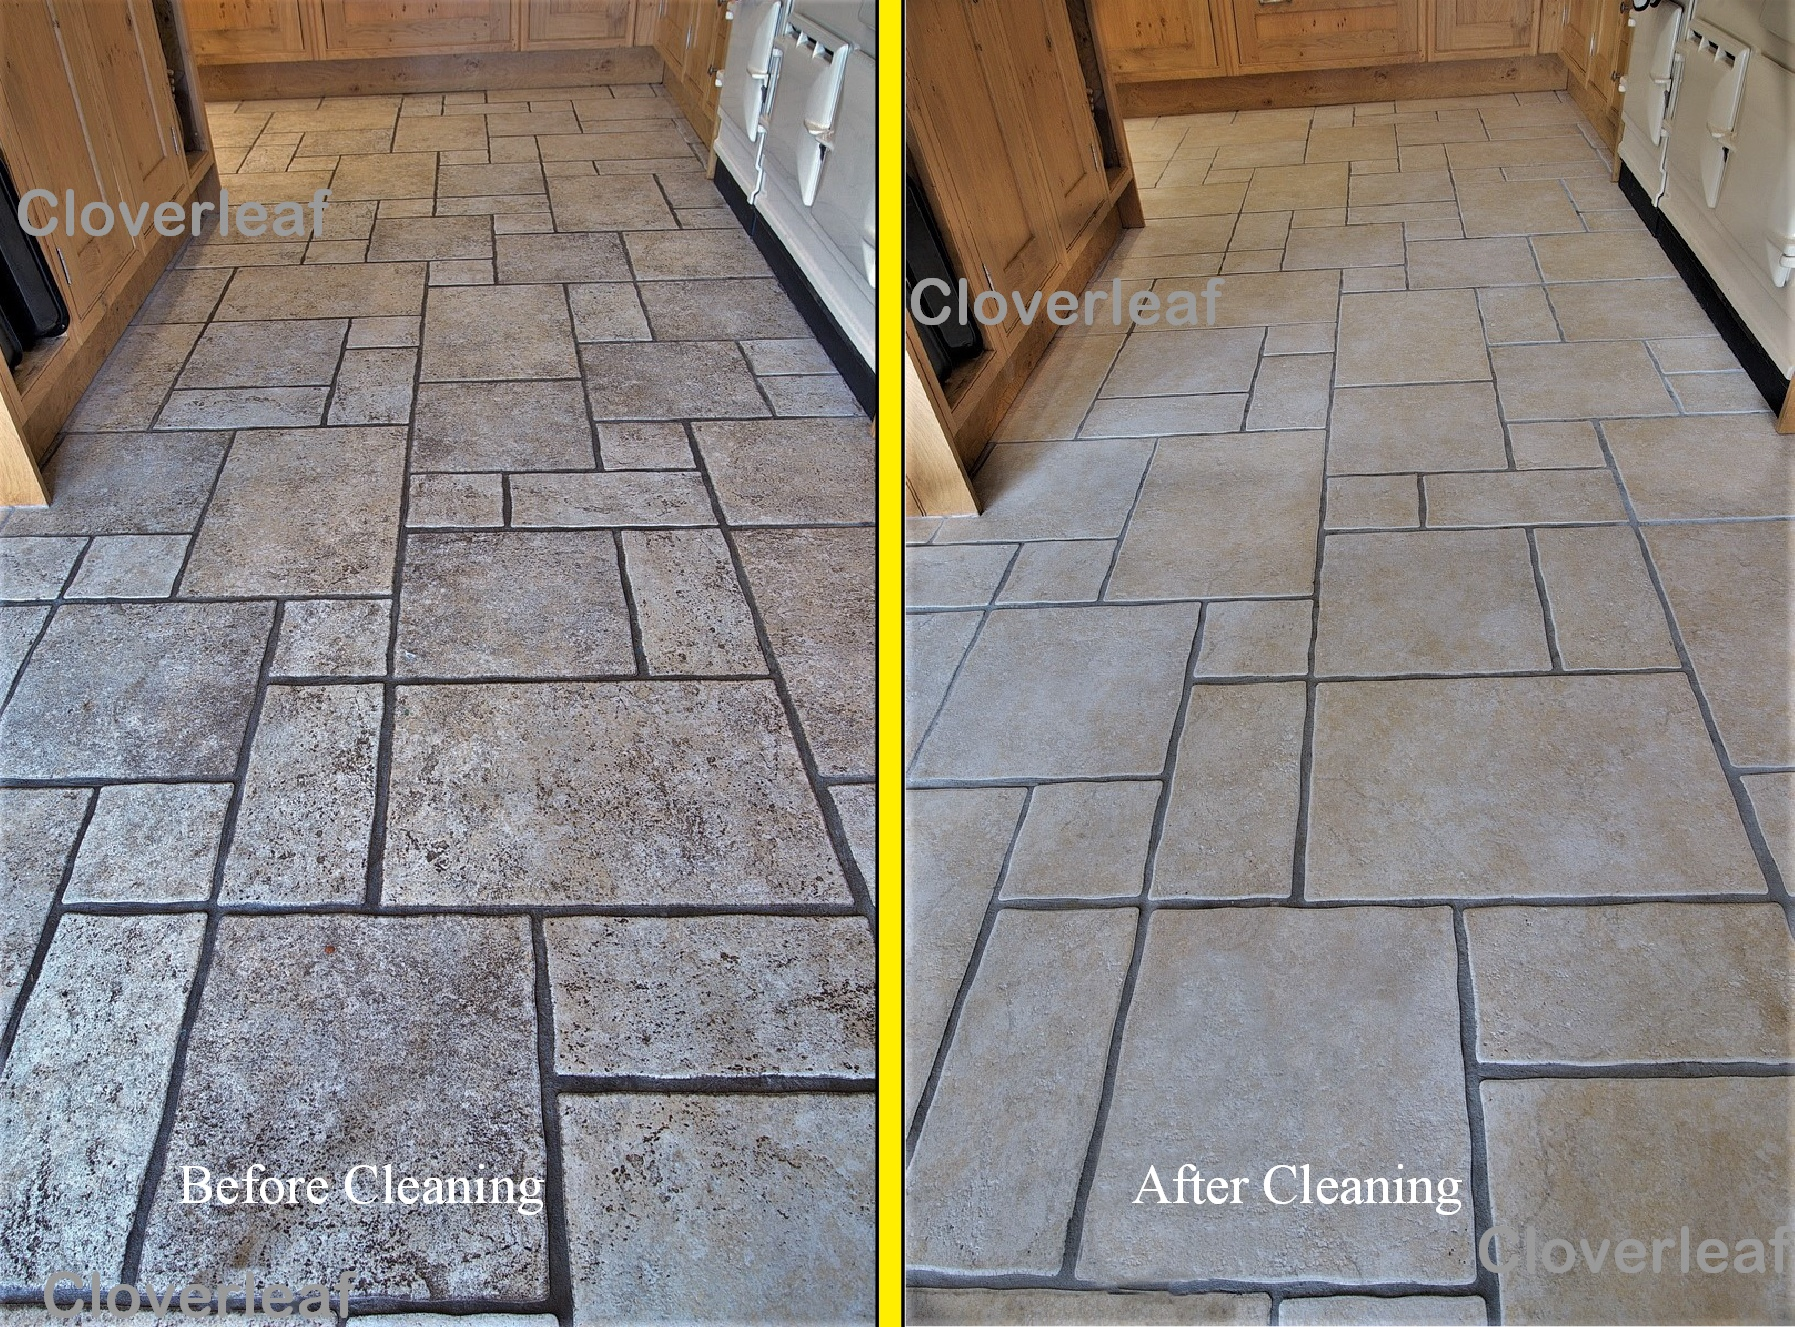 Floor tile cleaning in Cheshire